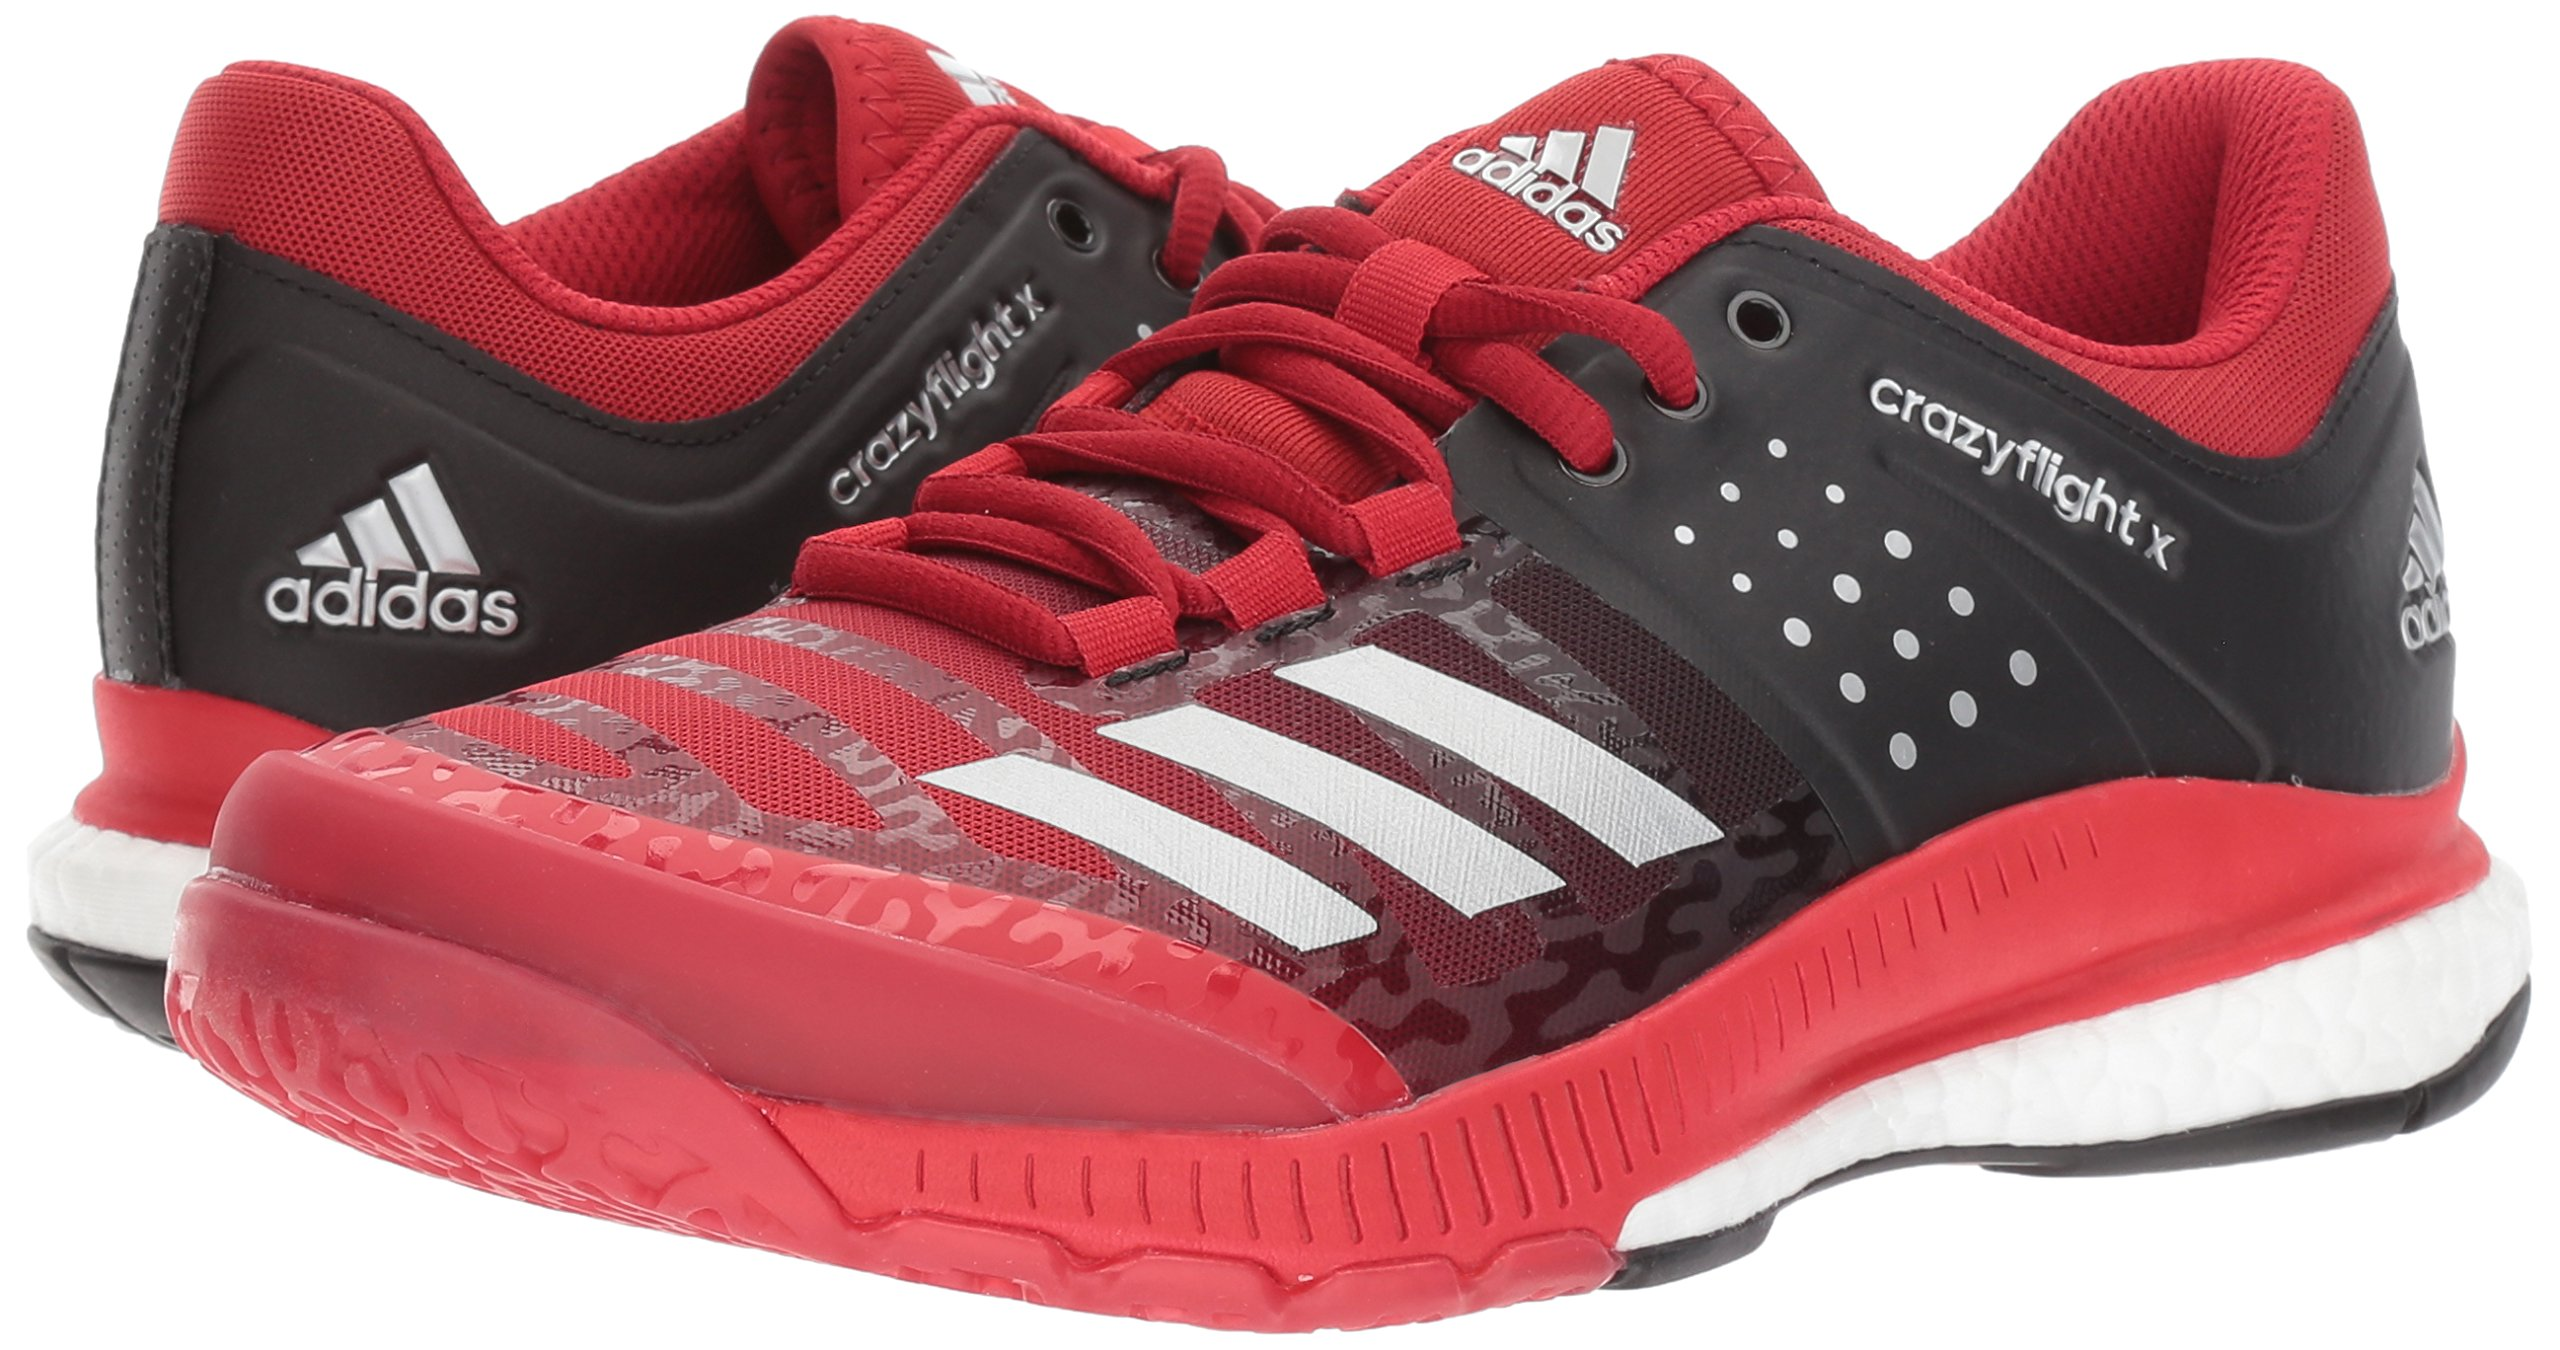 Adidas Women's Shoes Crazyflight X Volleyball Shoe Black/Metallic Silver/Power Red,7.5 by adidas Originals (Image #6)